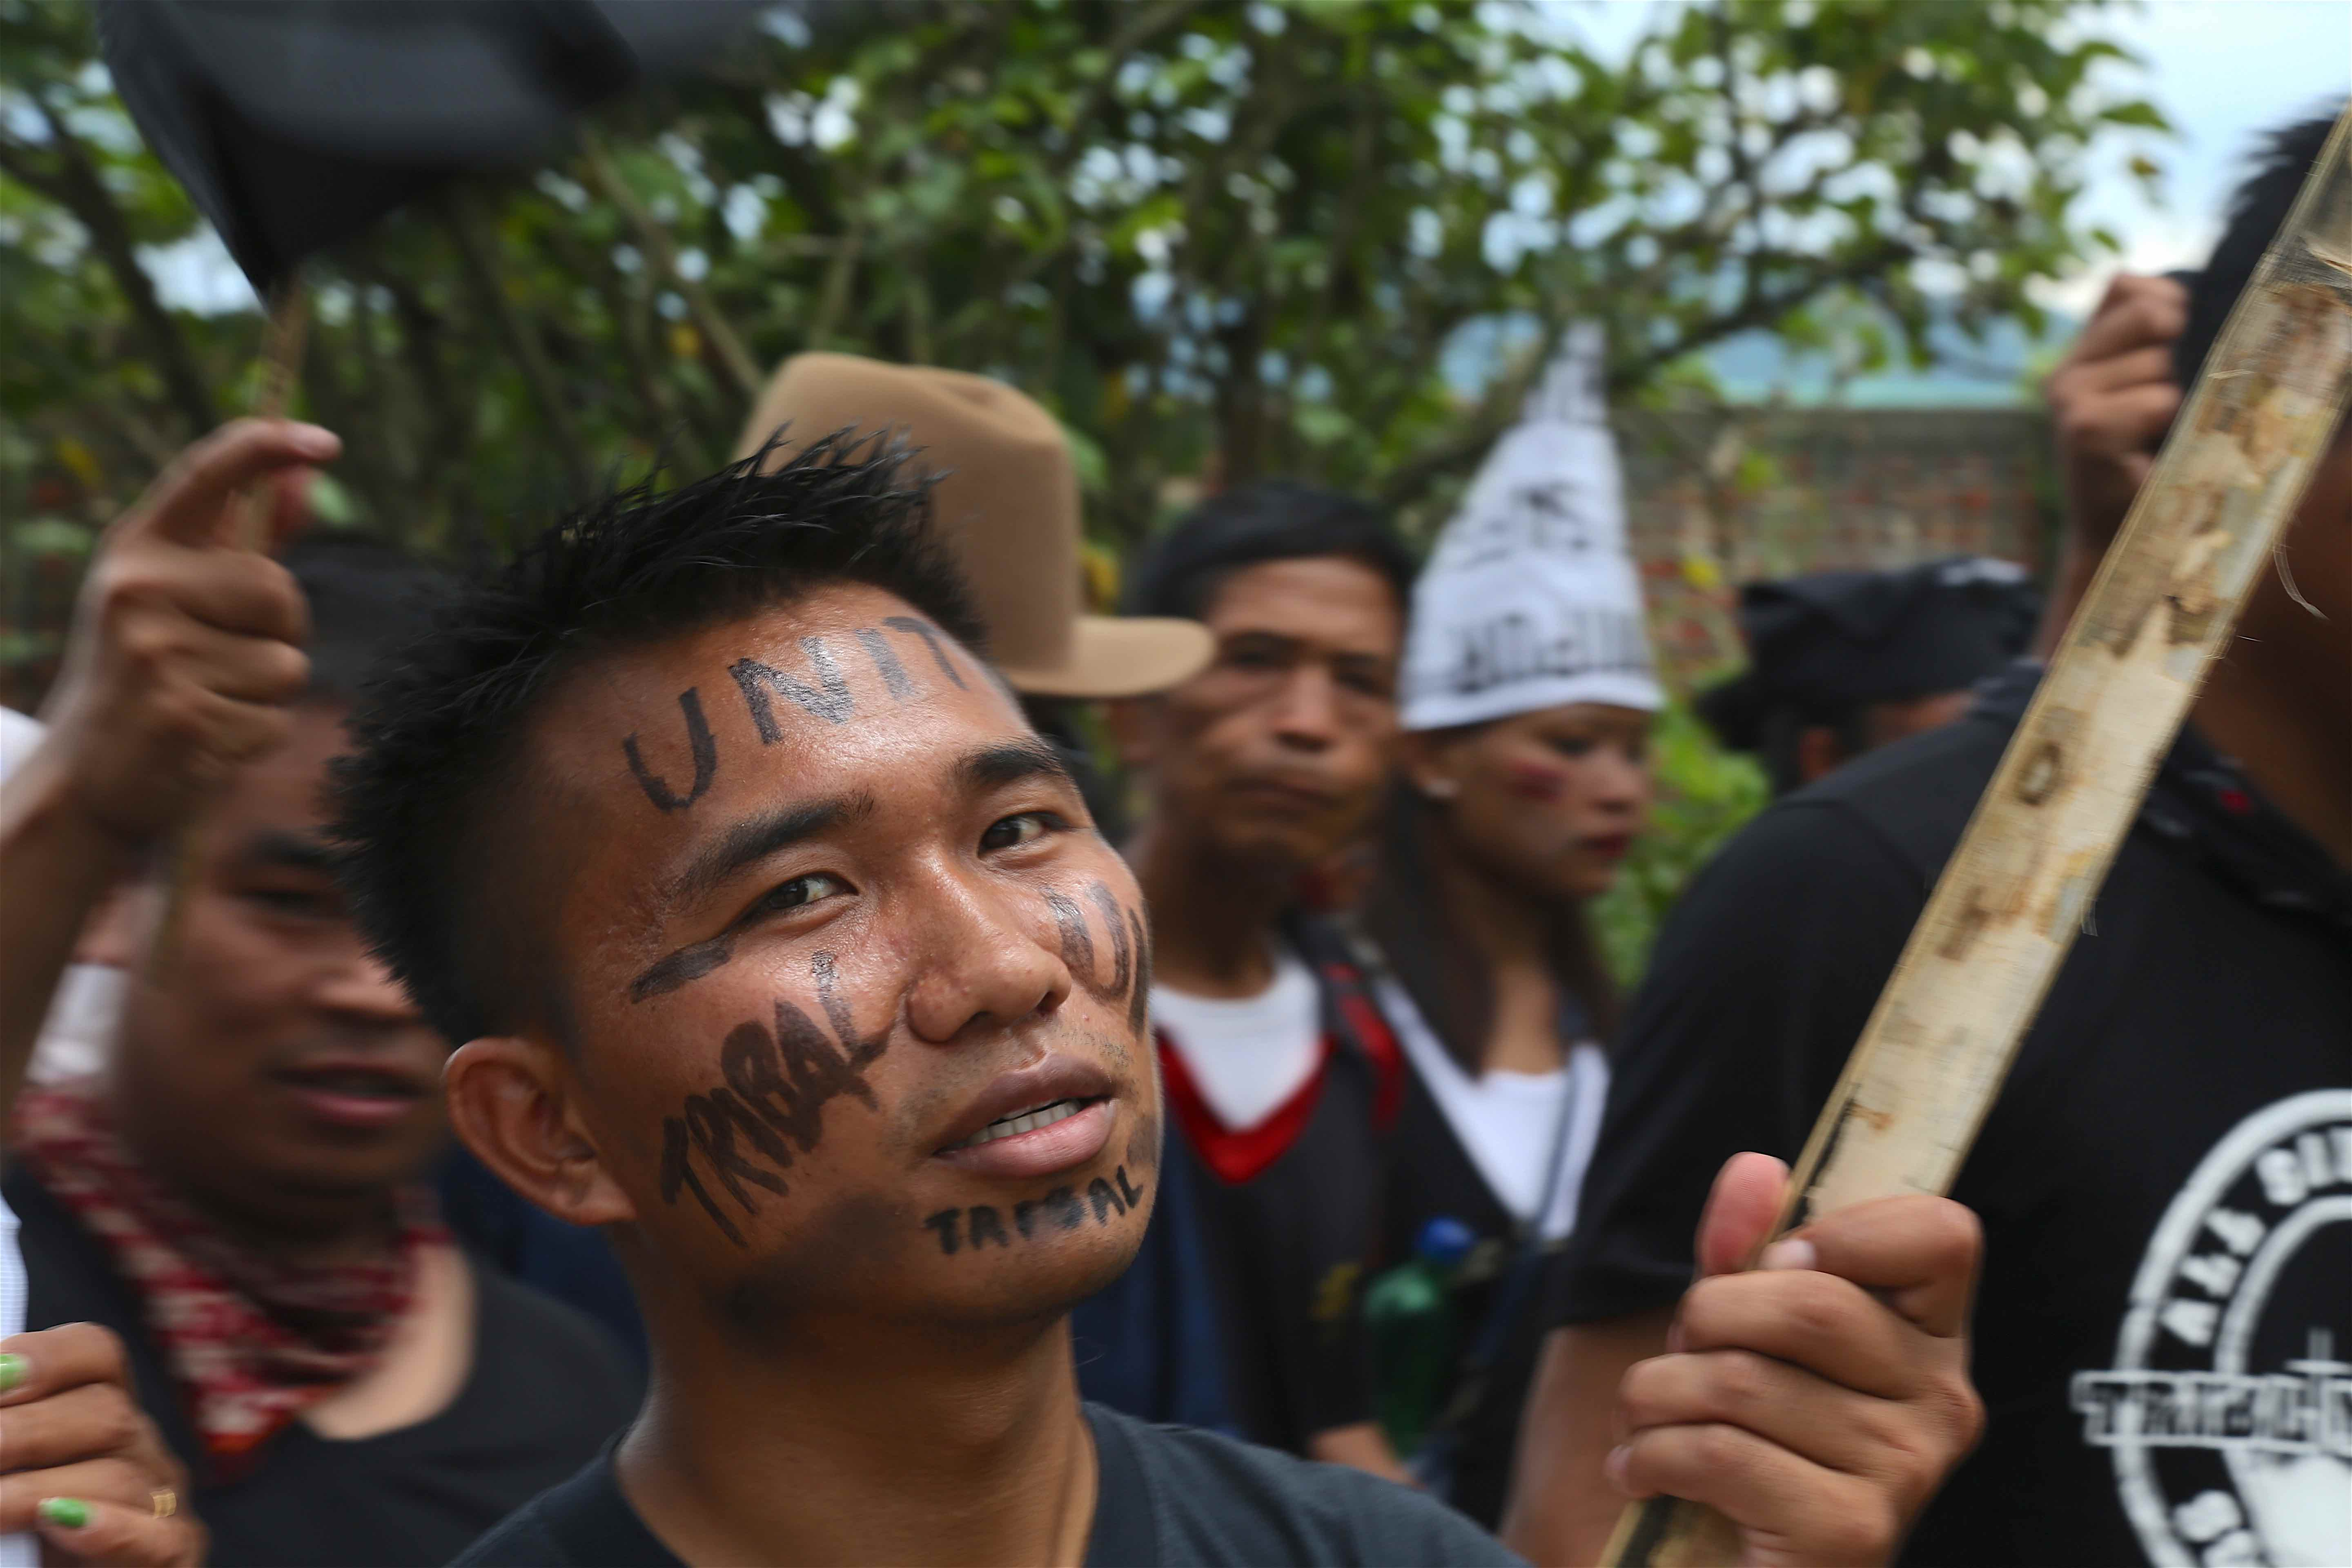 """Many young men painted """"tribal unity"""" on their faces. Credit: Akhil Kumar"""